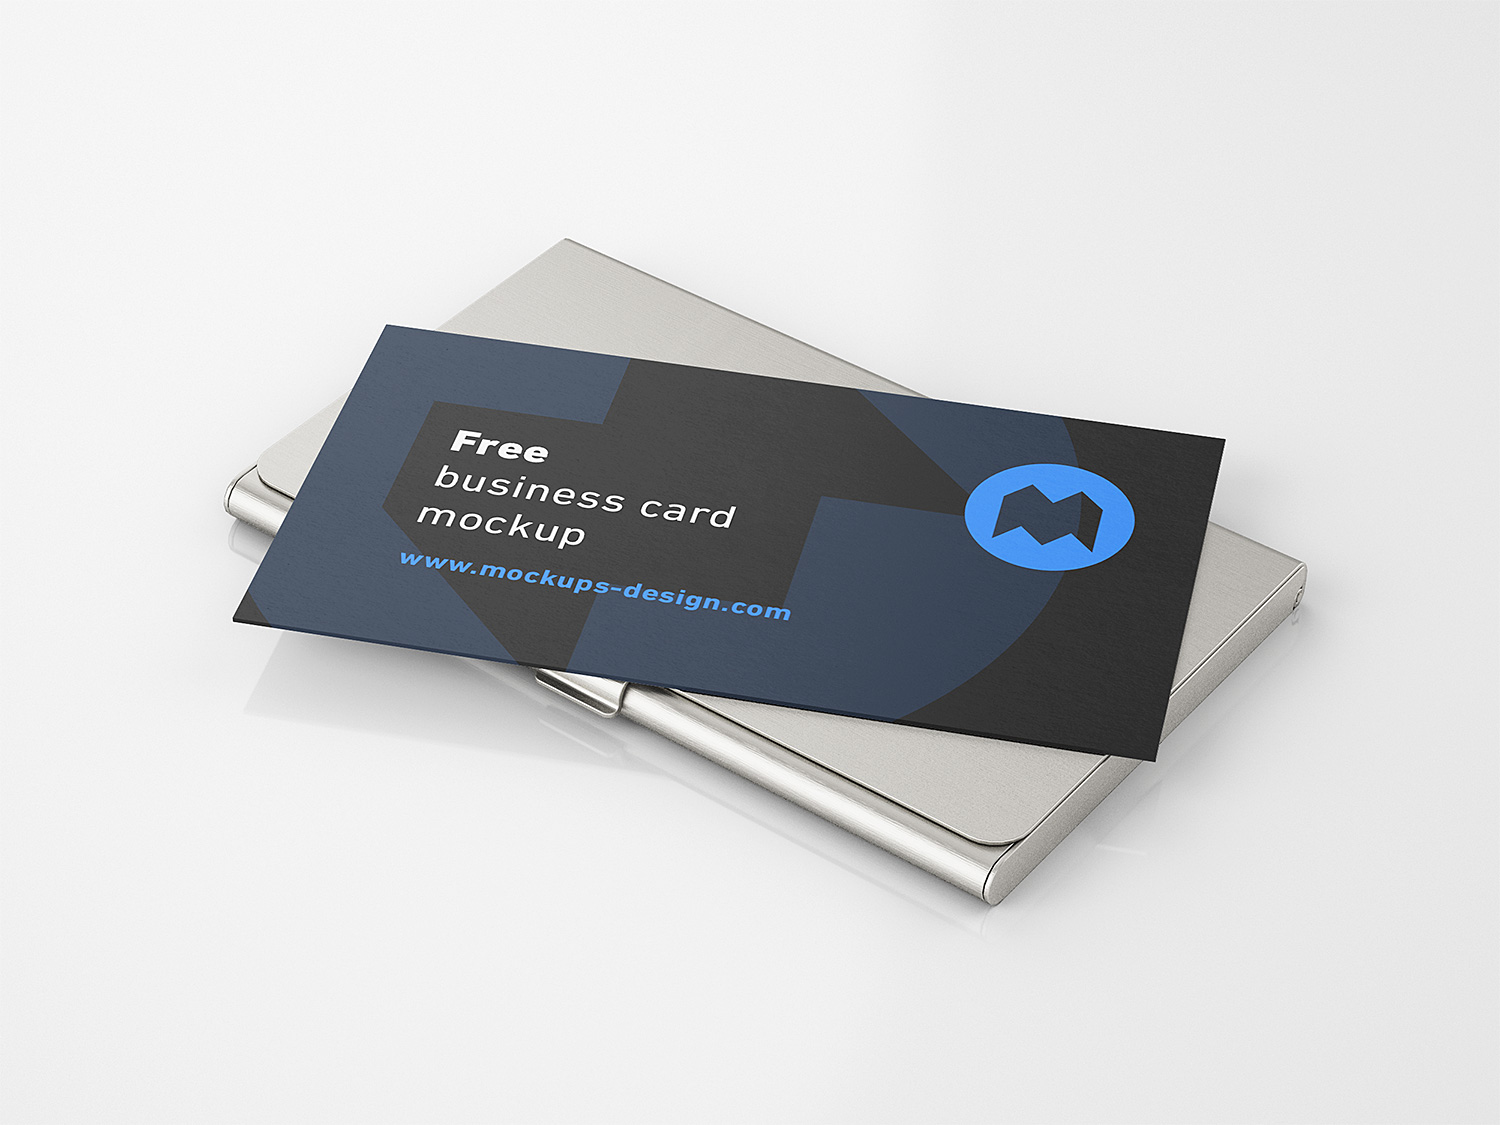 Business-Card-Holder-Mockup-03